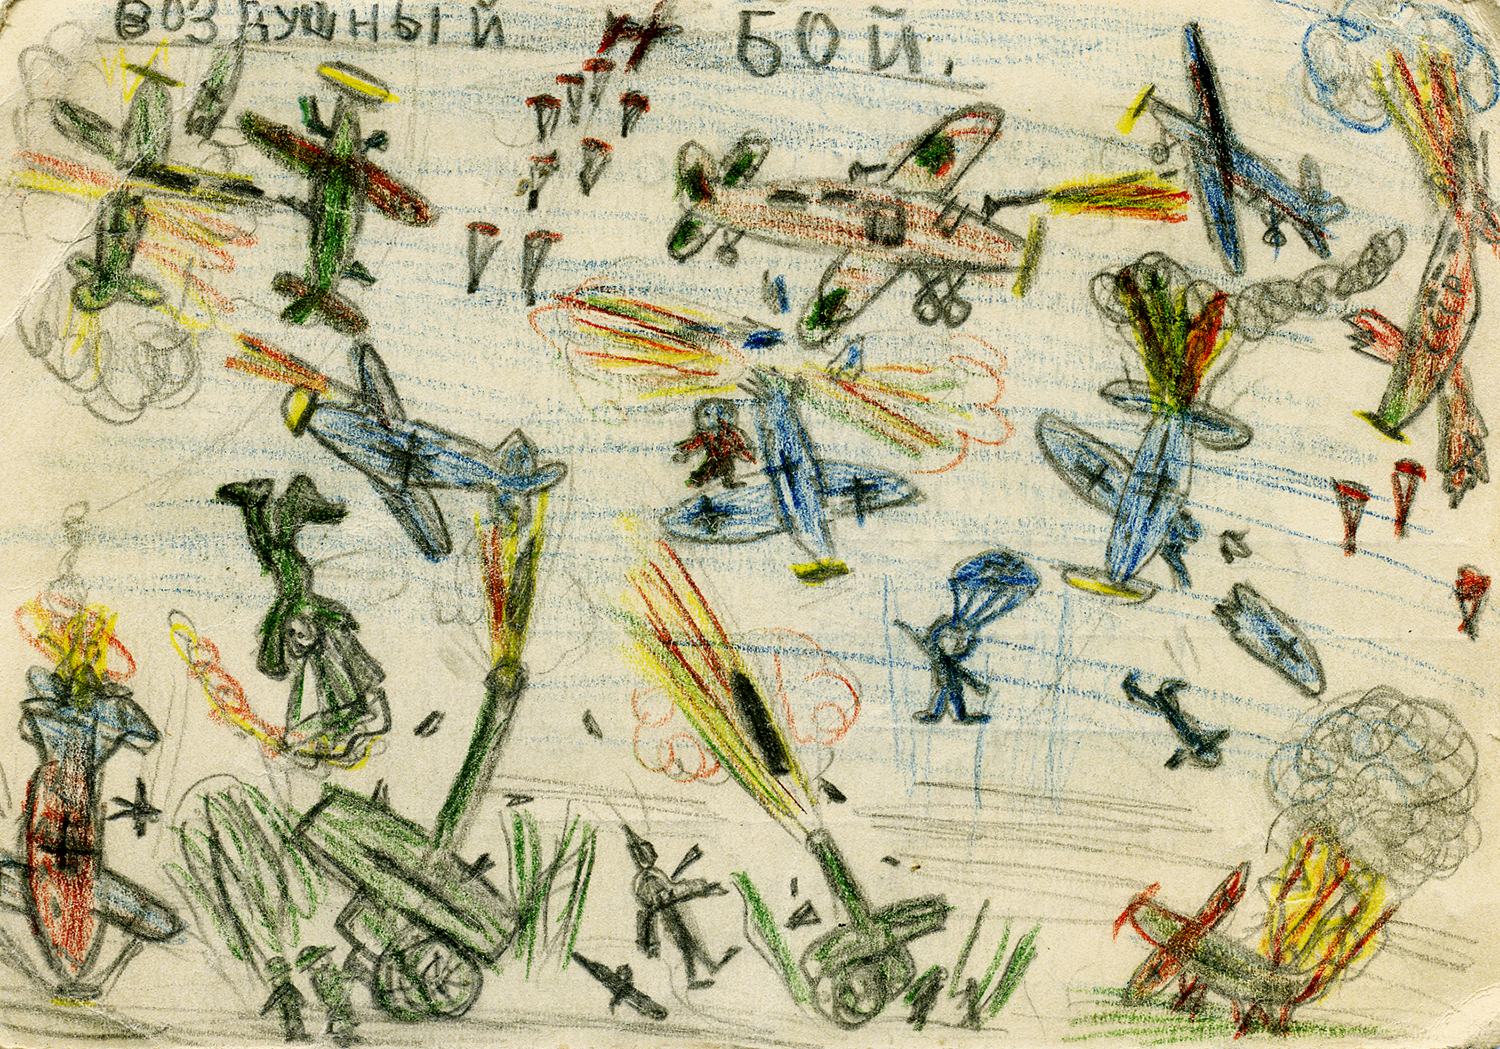 """Air Battle"" drawn on a postcard, sent on March 14, 1943 by schoolboy Seva to his father Uri Pertsovich."